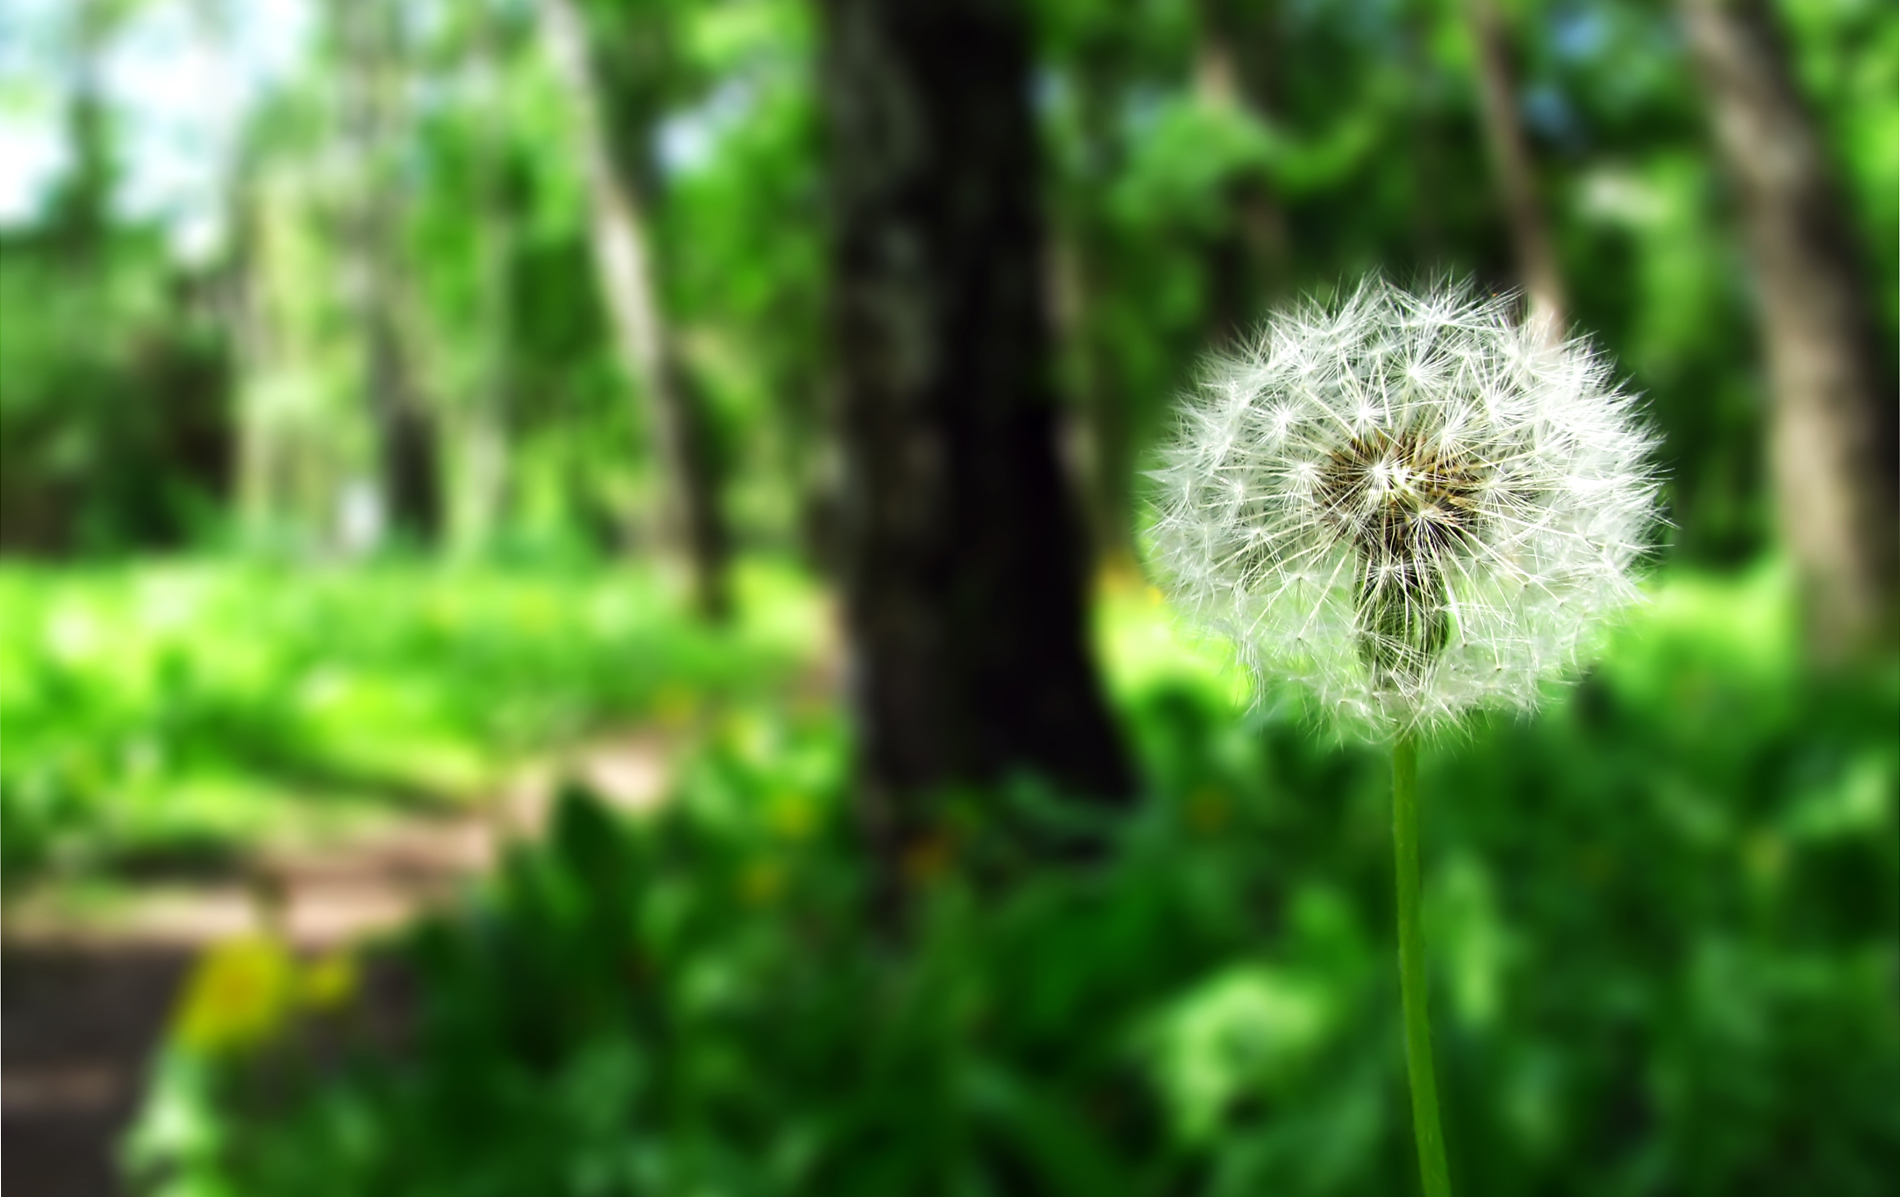 Dandelion Wallpaper Nature